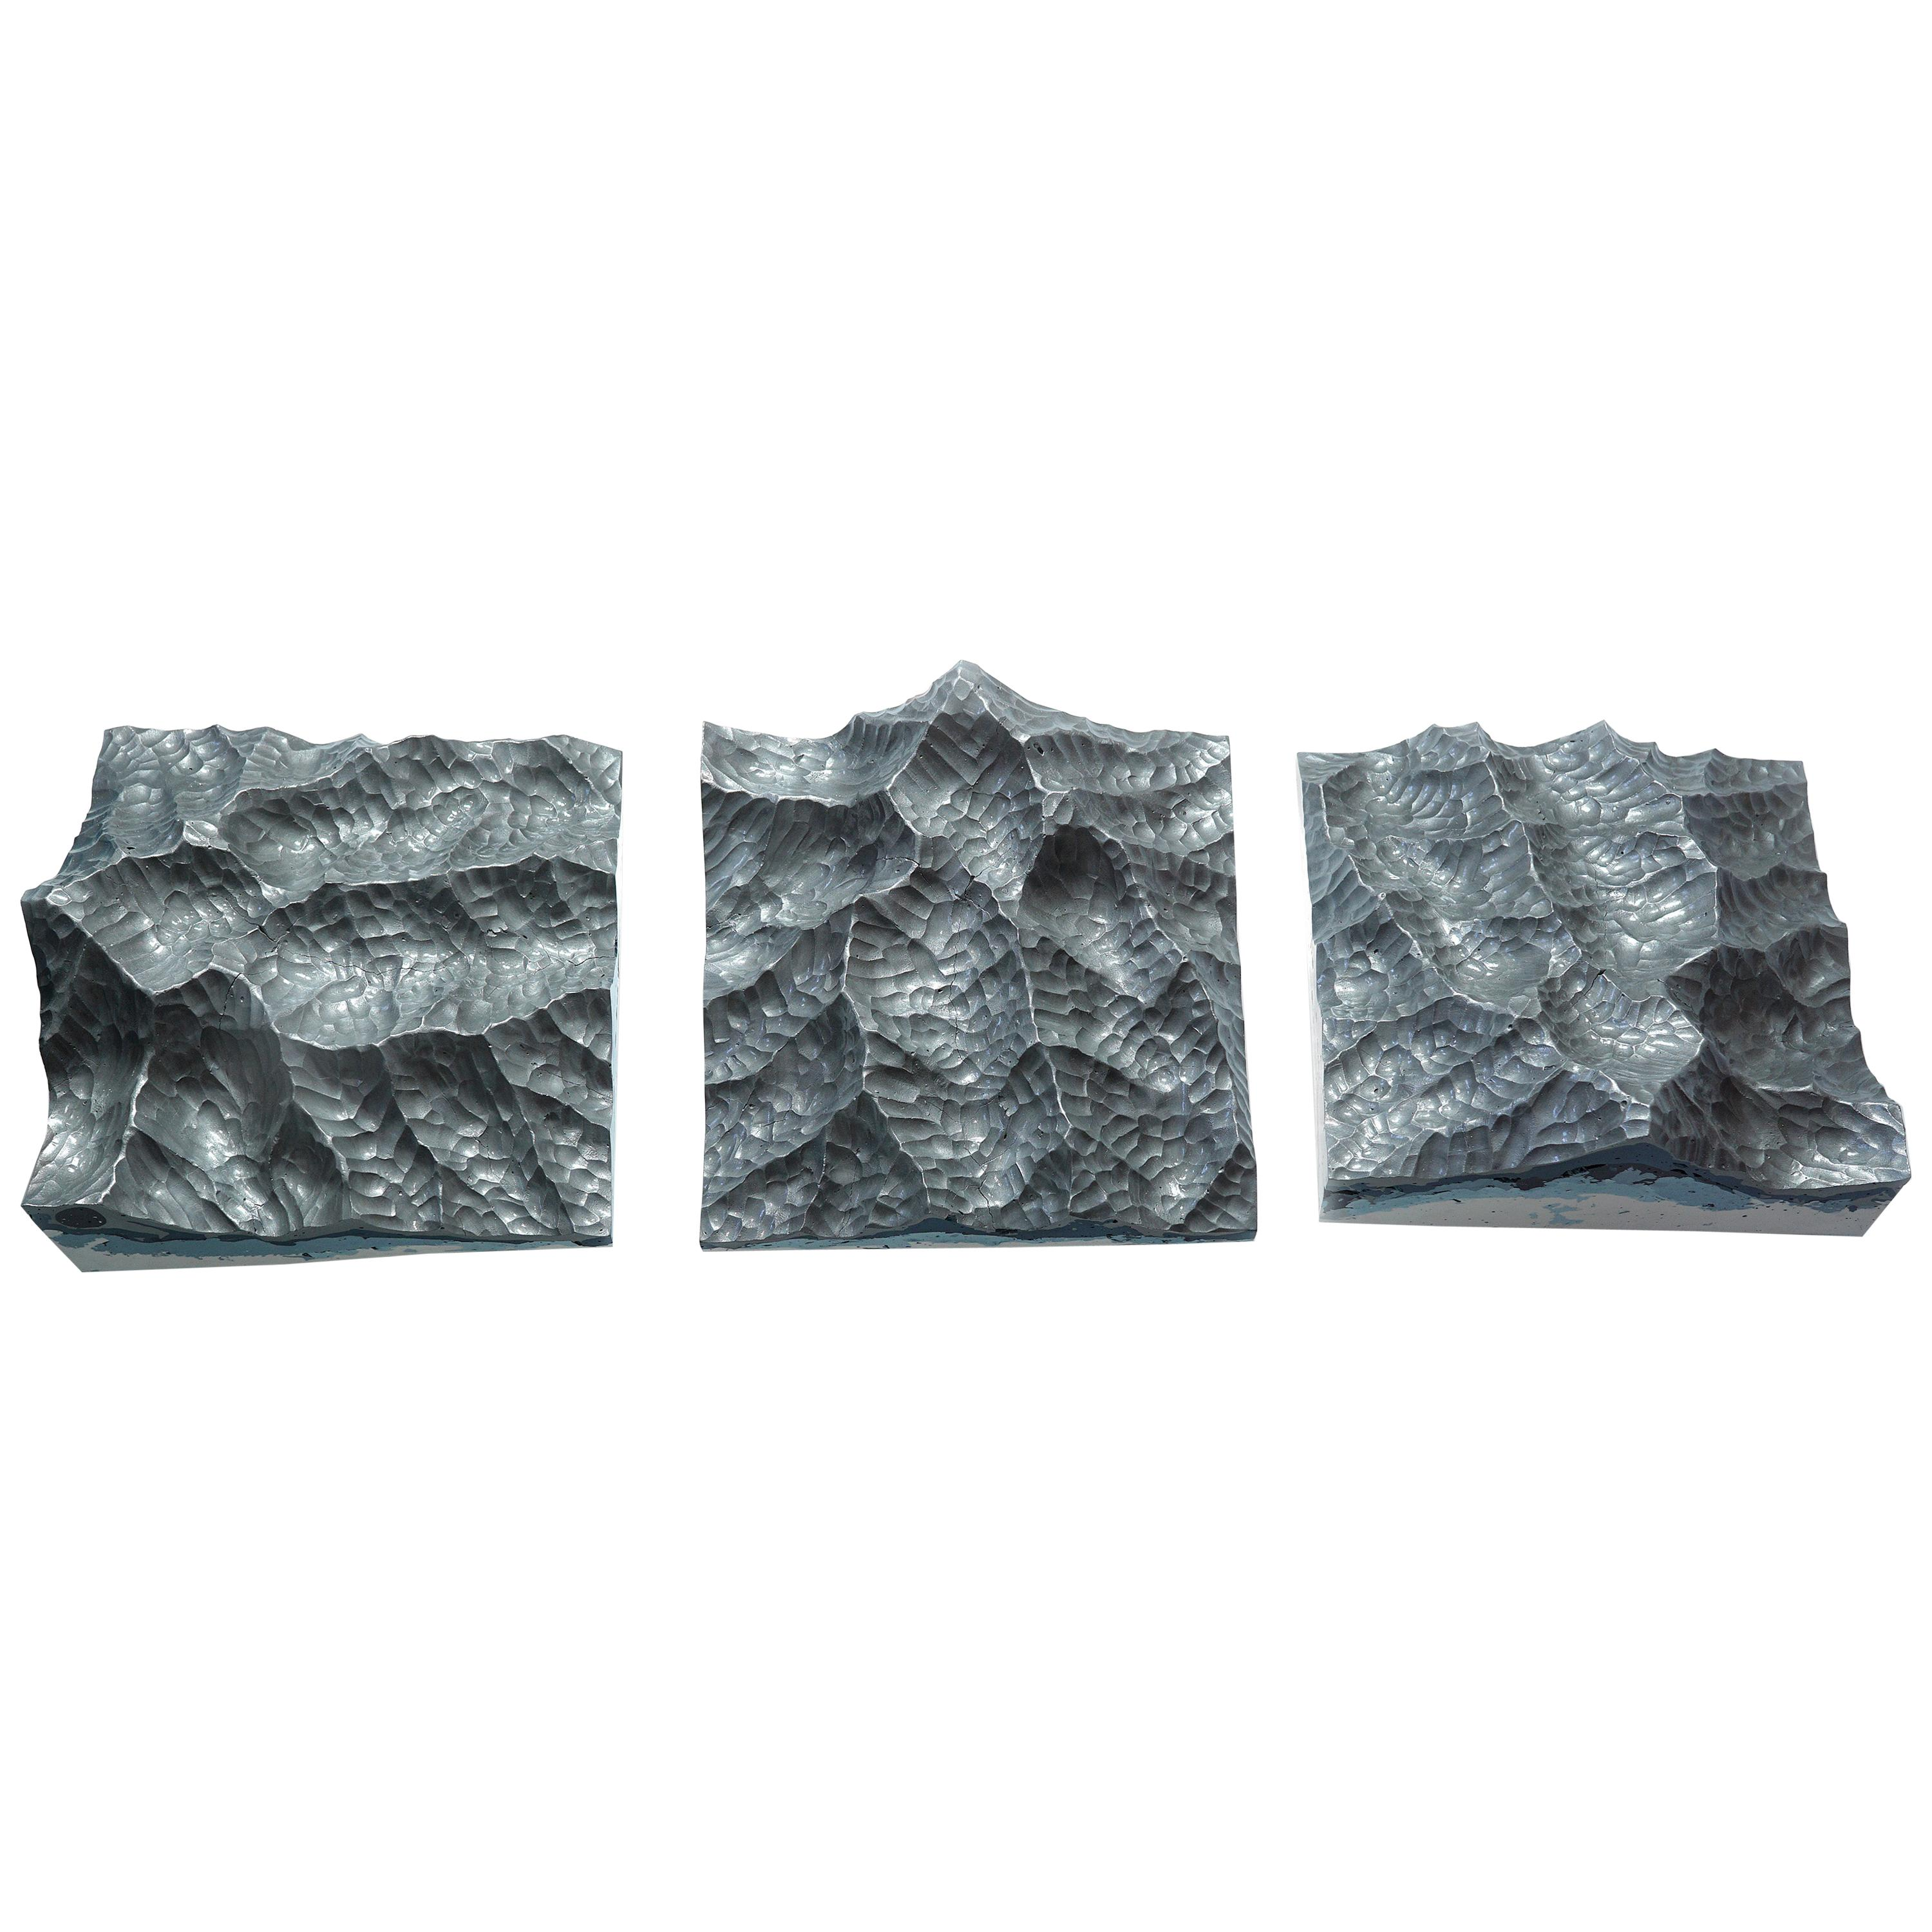 Iron Mountains - Contemporary Wall sculpture - by Eduard Locota